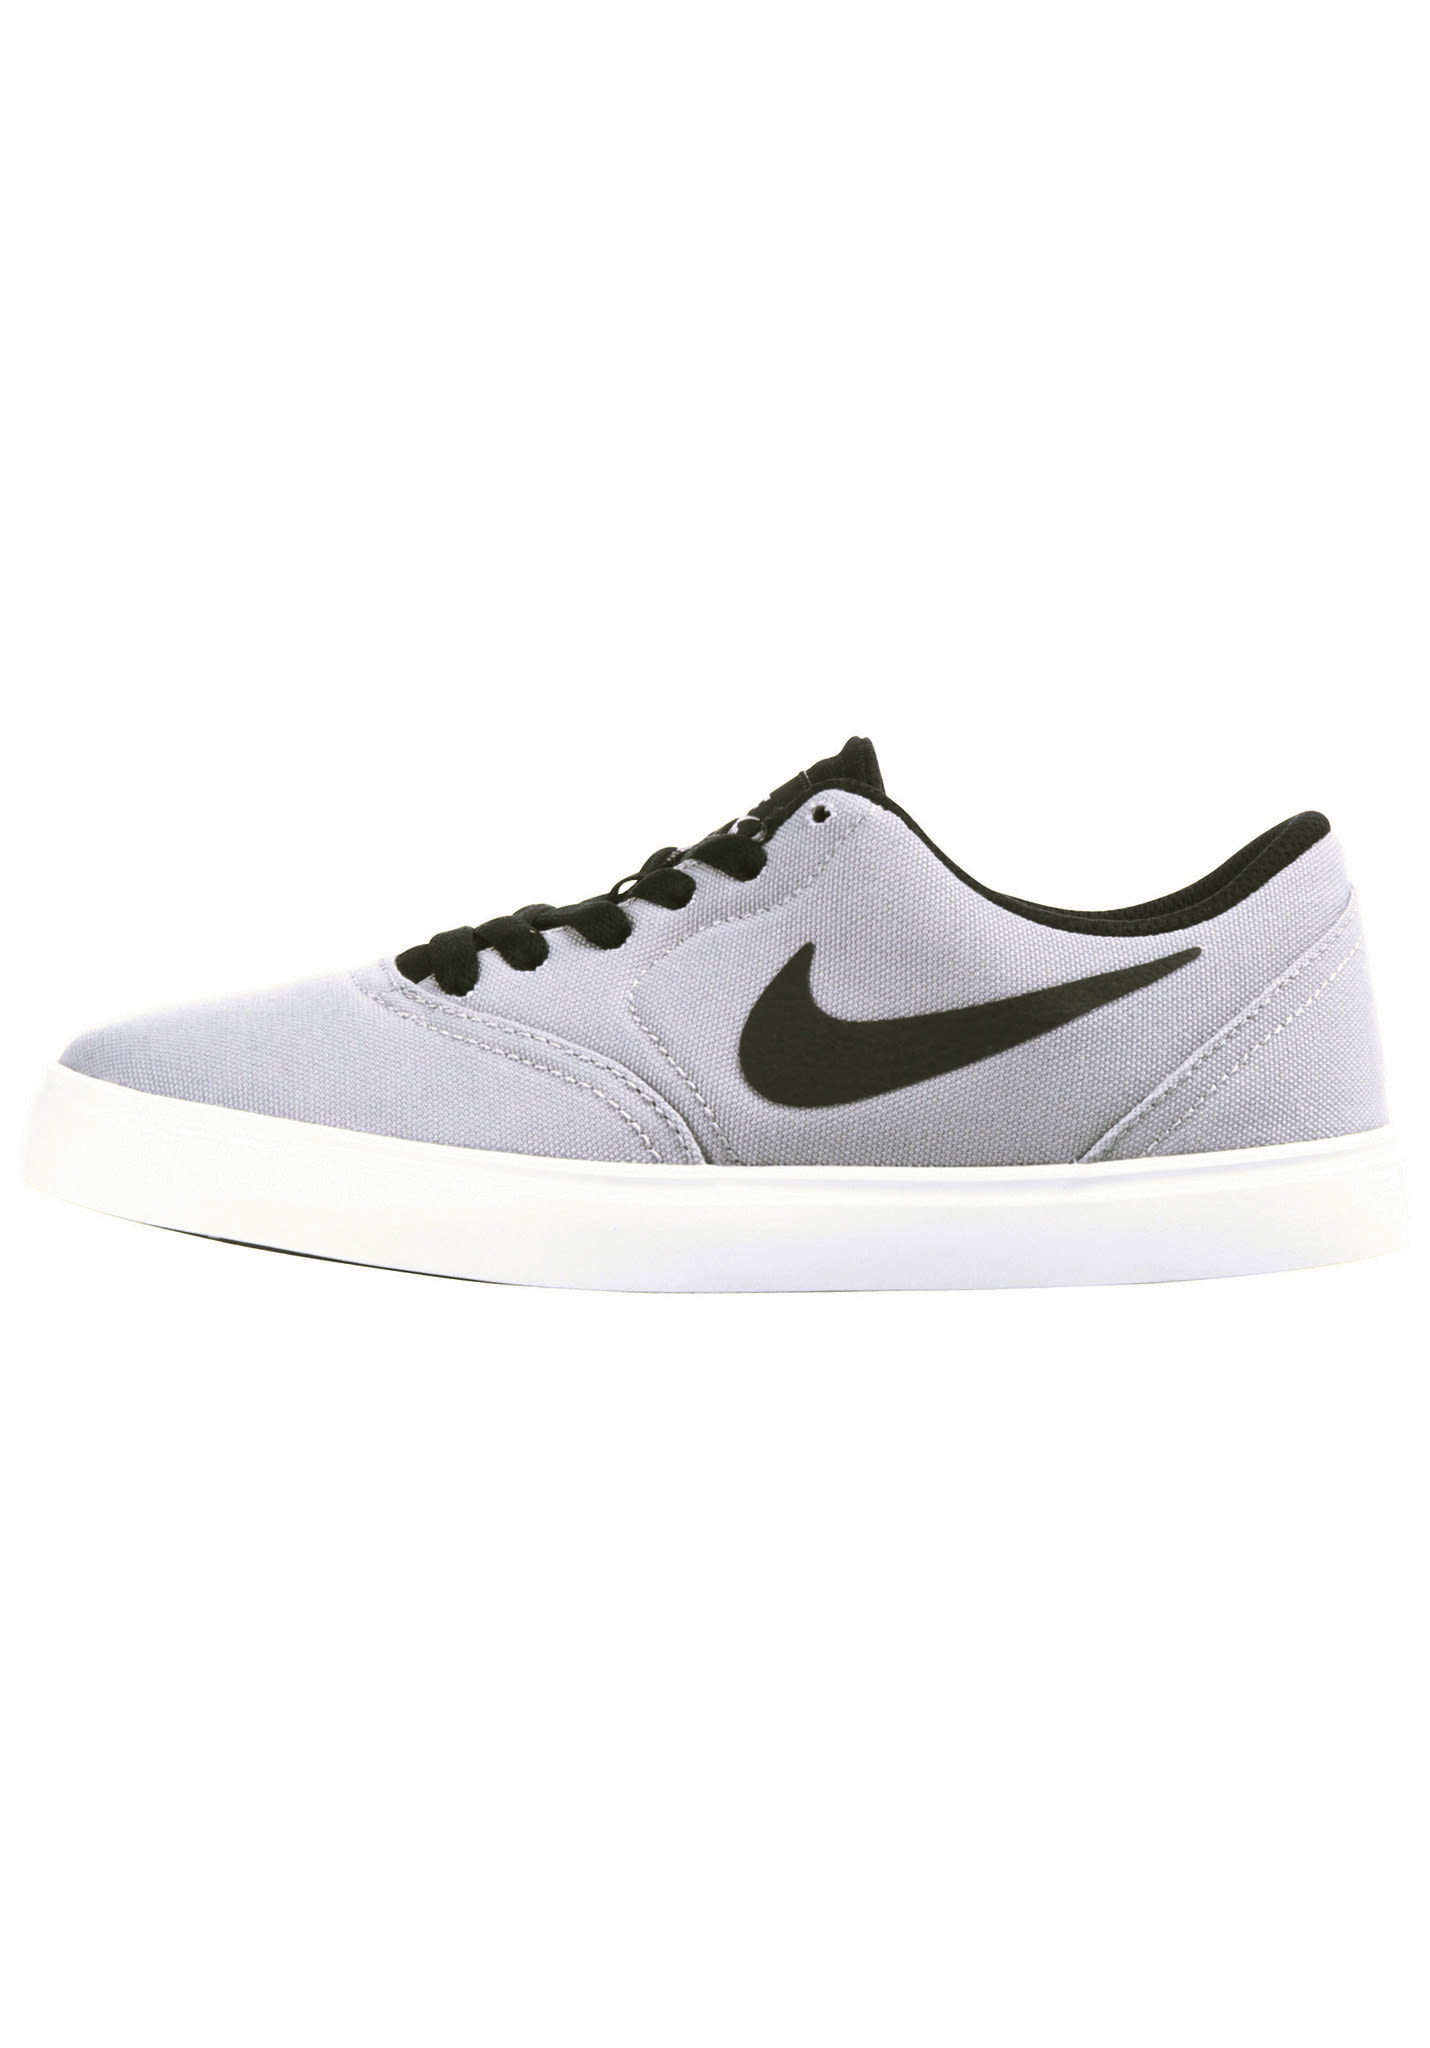 official photos 4d86c fd216 NIKE SB Check - Baskets pour Garçon - Gris - Planet Sports